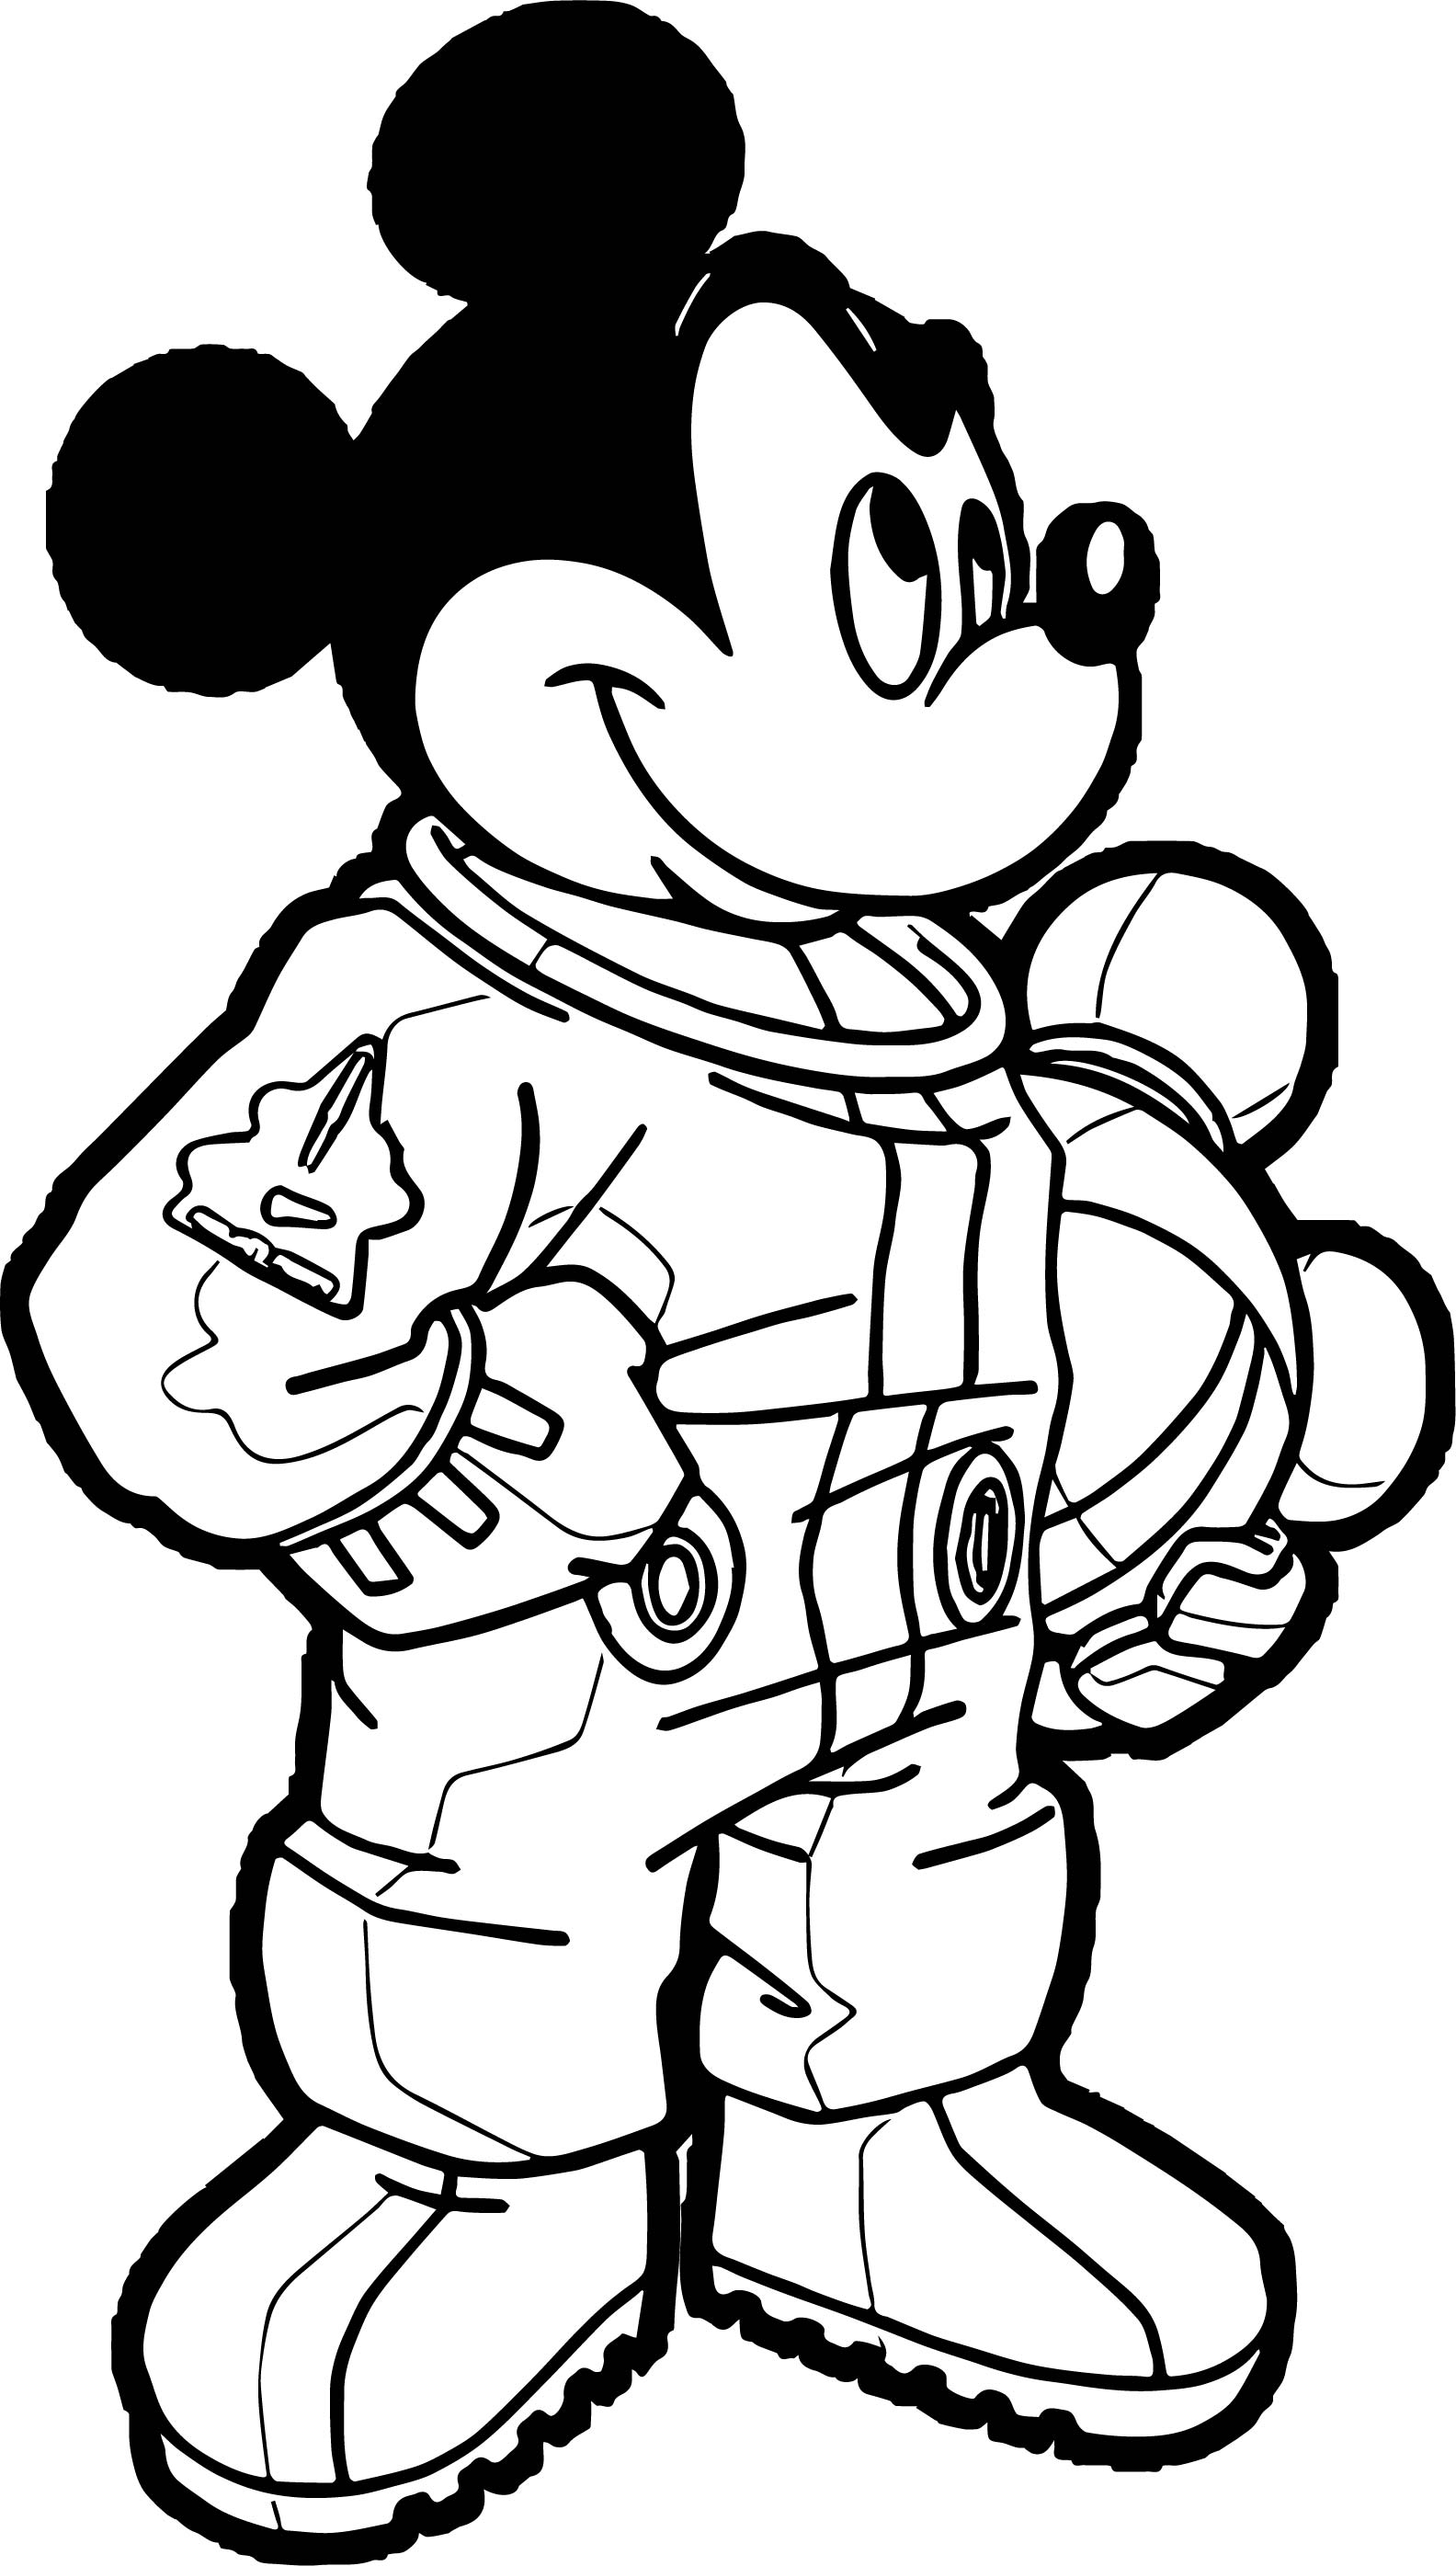 astronaut mickey mouse coloring page wecoloringpage